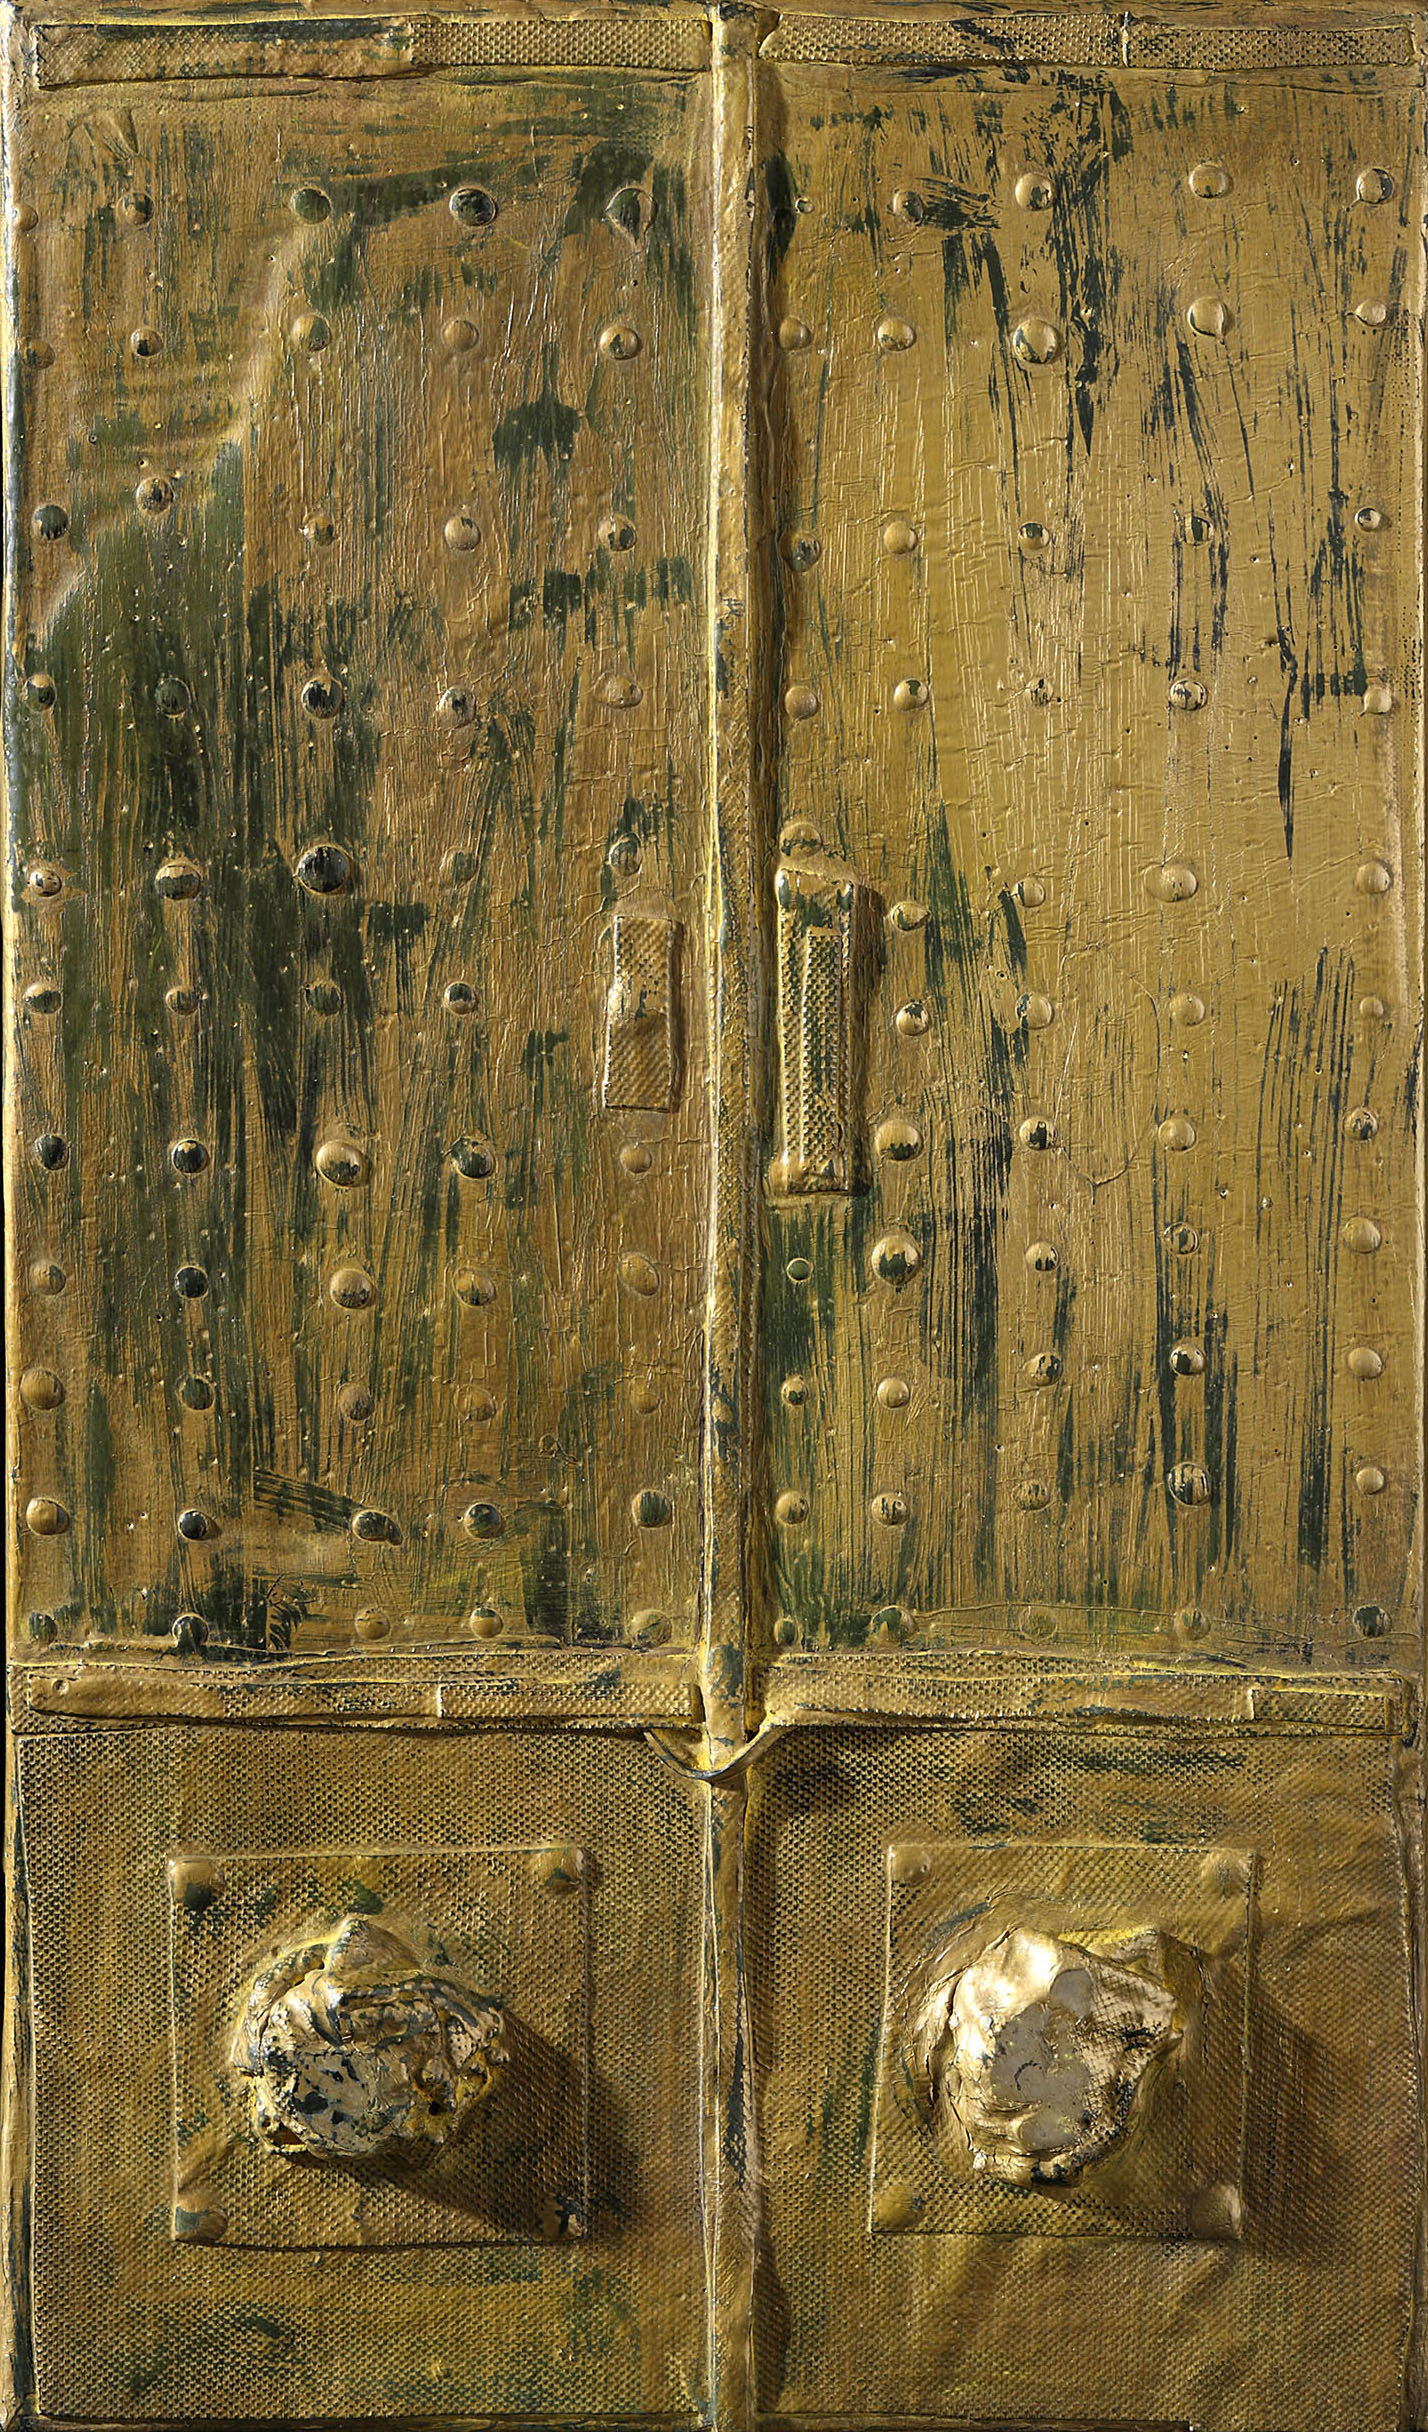 Door, 1960, mixed media on canvas, cm 55 x 38